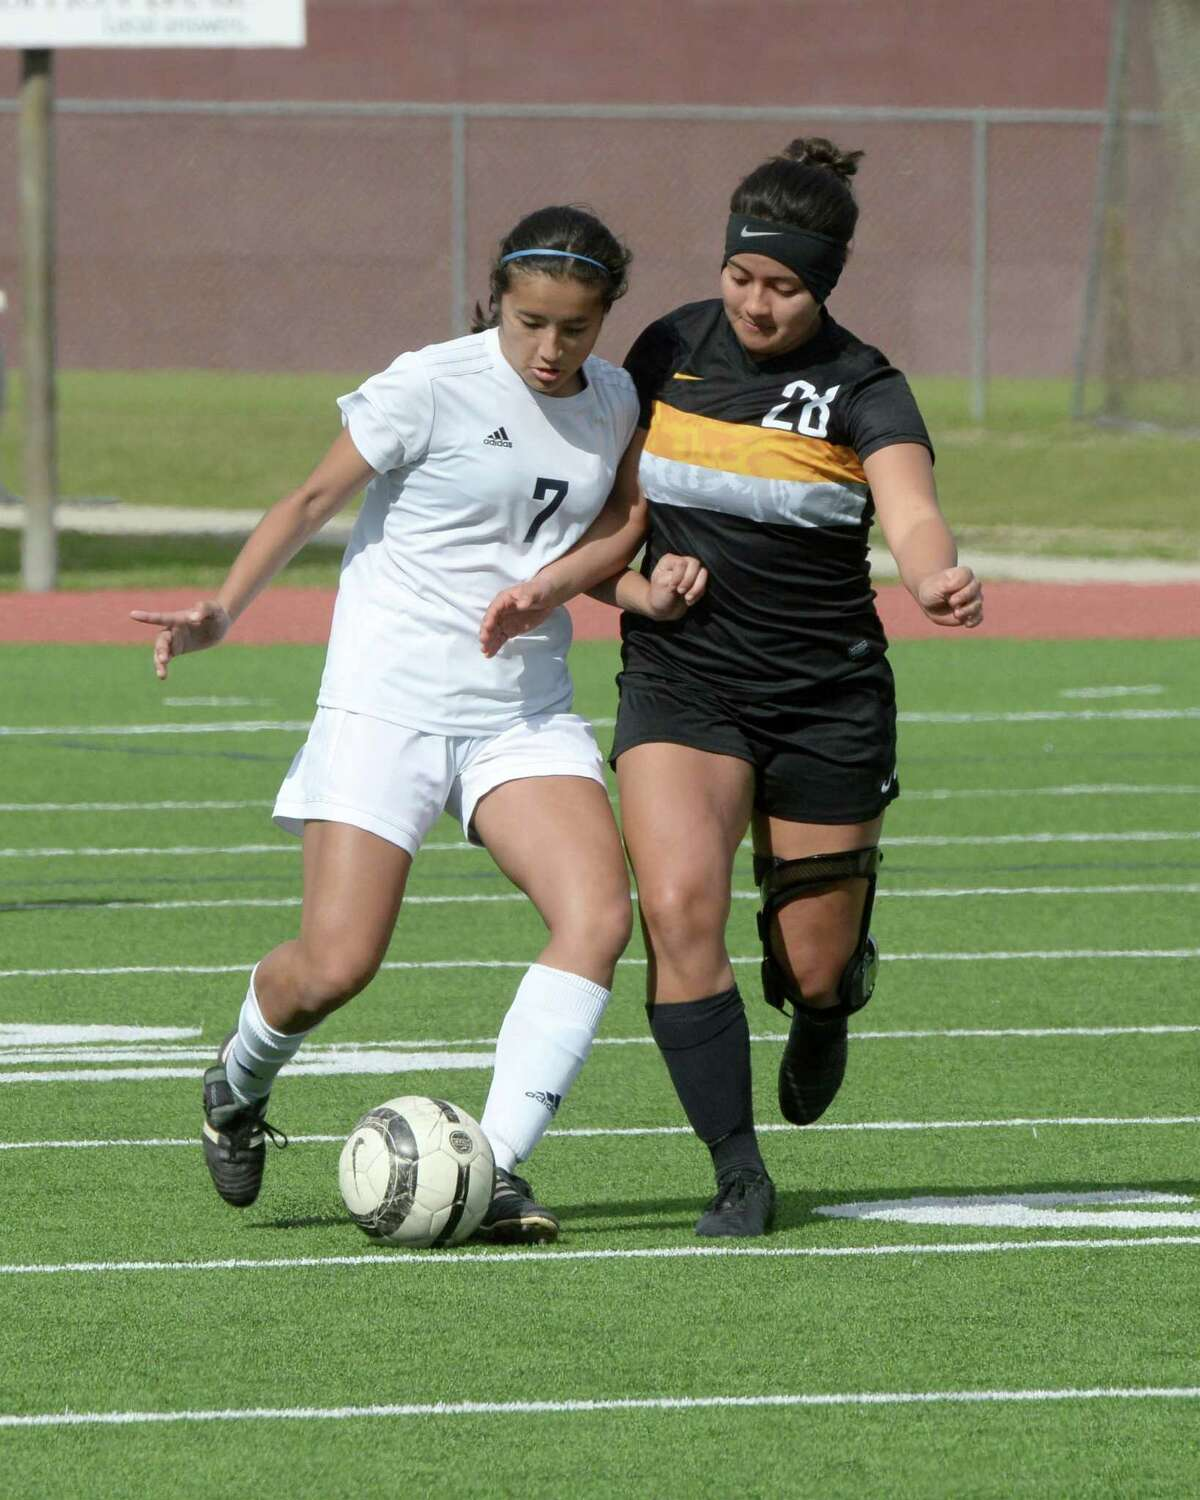 Prasna Neupane (7) of Clements and Natalie Guandique (28) of St. Agnes compete for a ball during the second half of a high school soccer game between the Clements Rangers and the St. Agnes Tigers in the I-10 Shootout on Thursday, January 10, 2019 at Cinco Ranch High School, Katy, TX.